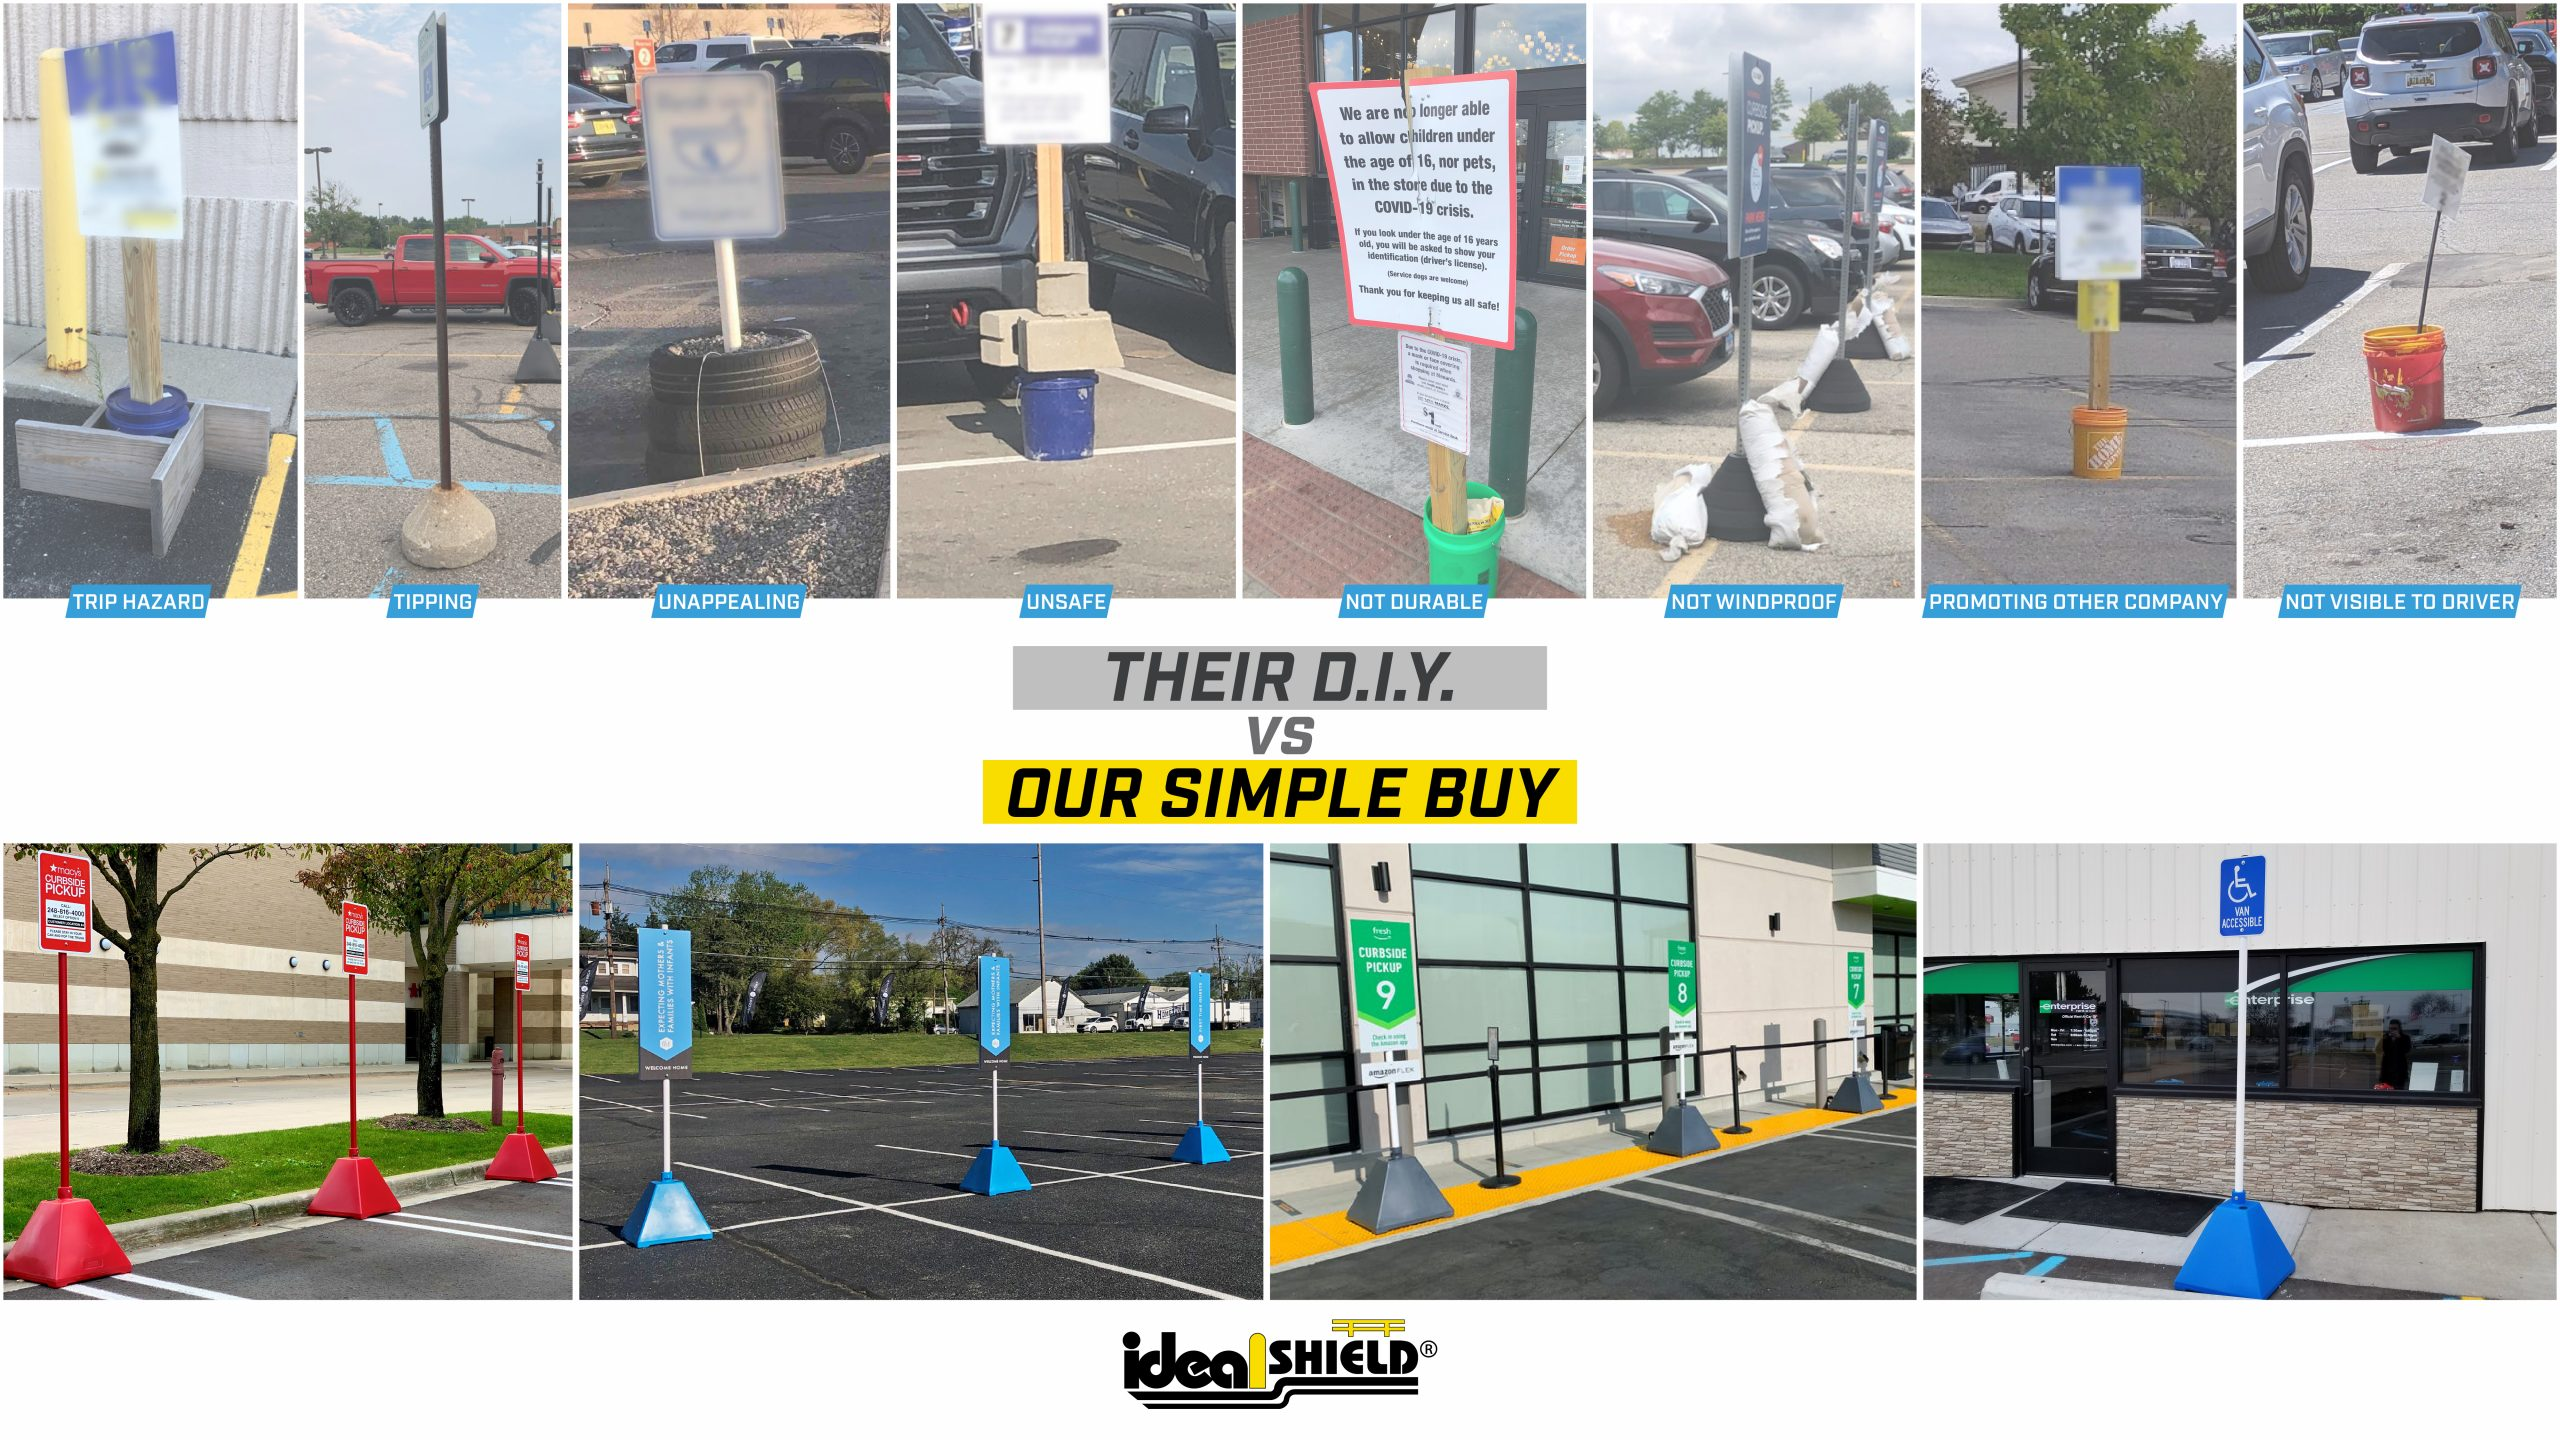 Ideal Shield's Curbside Pickup Sign Systems compared to DIY signs